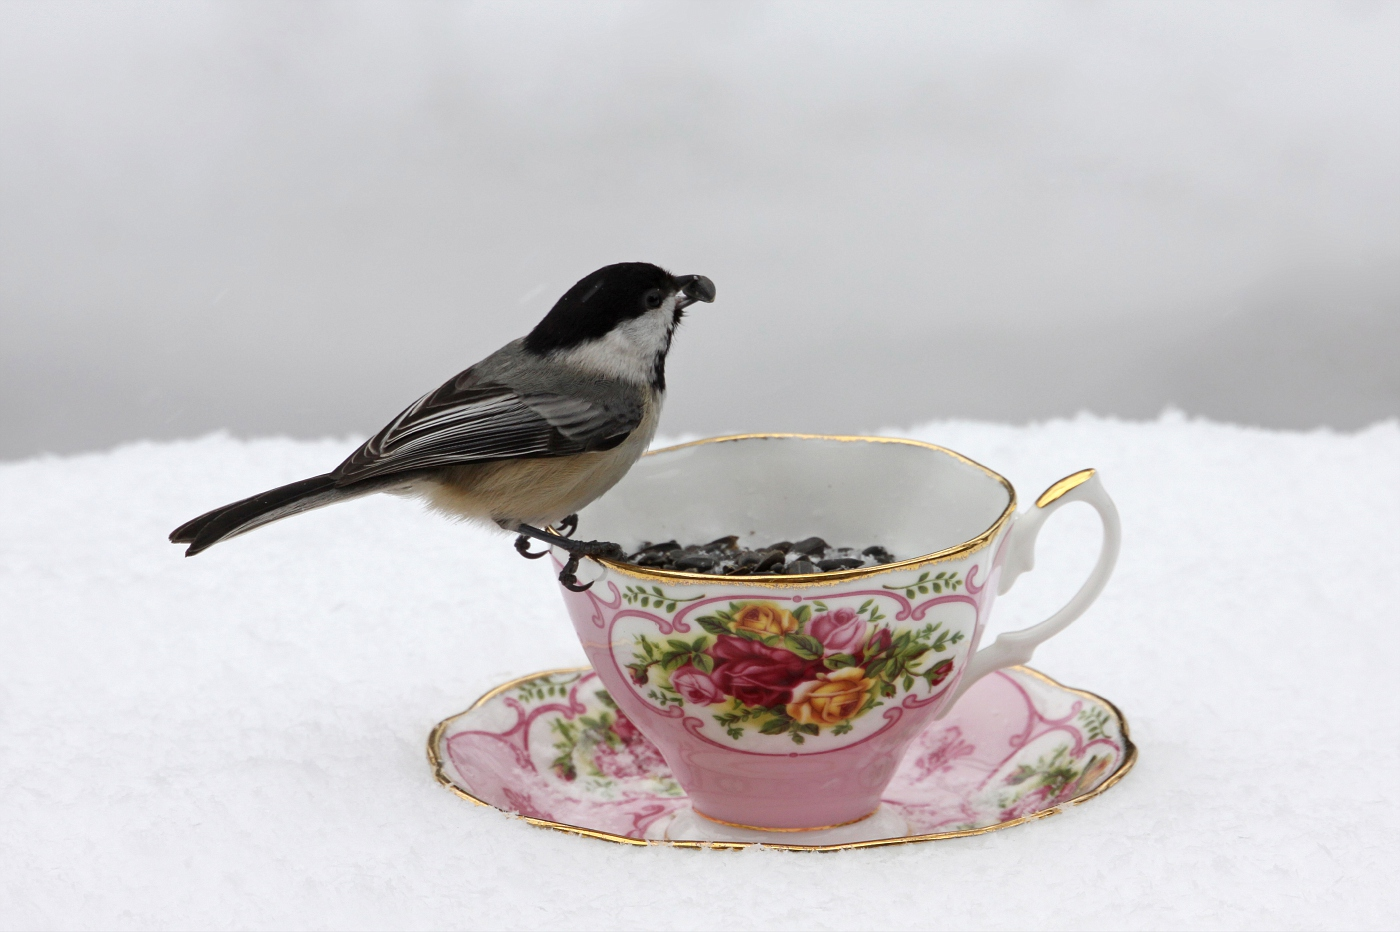 Teacup at the Feeder #3